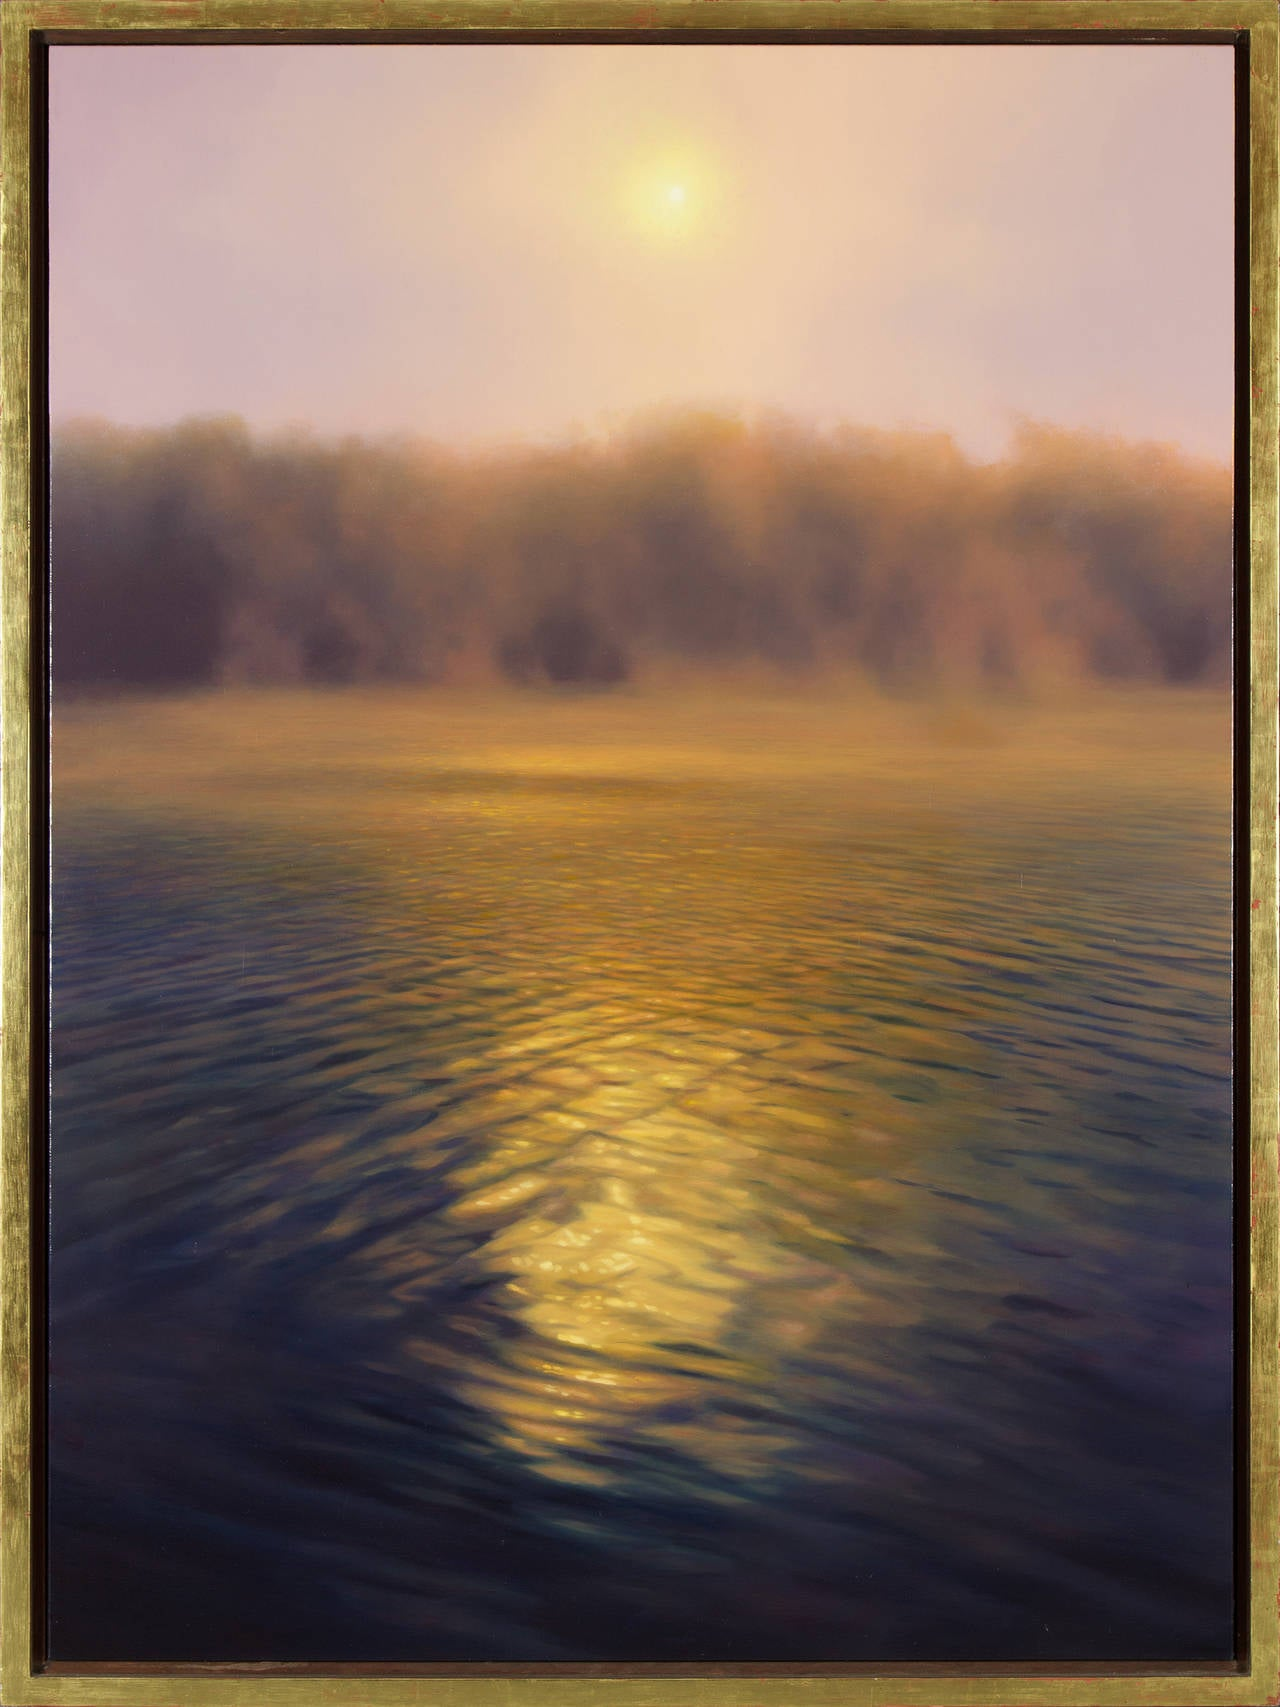 Sunrise Over River - Painting by Scott Prior